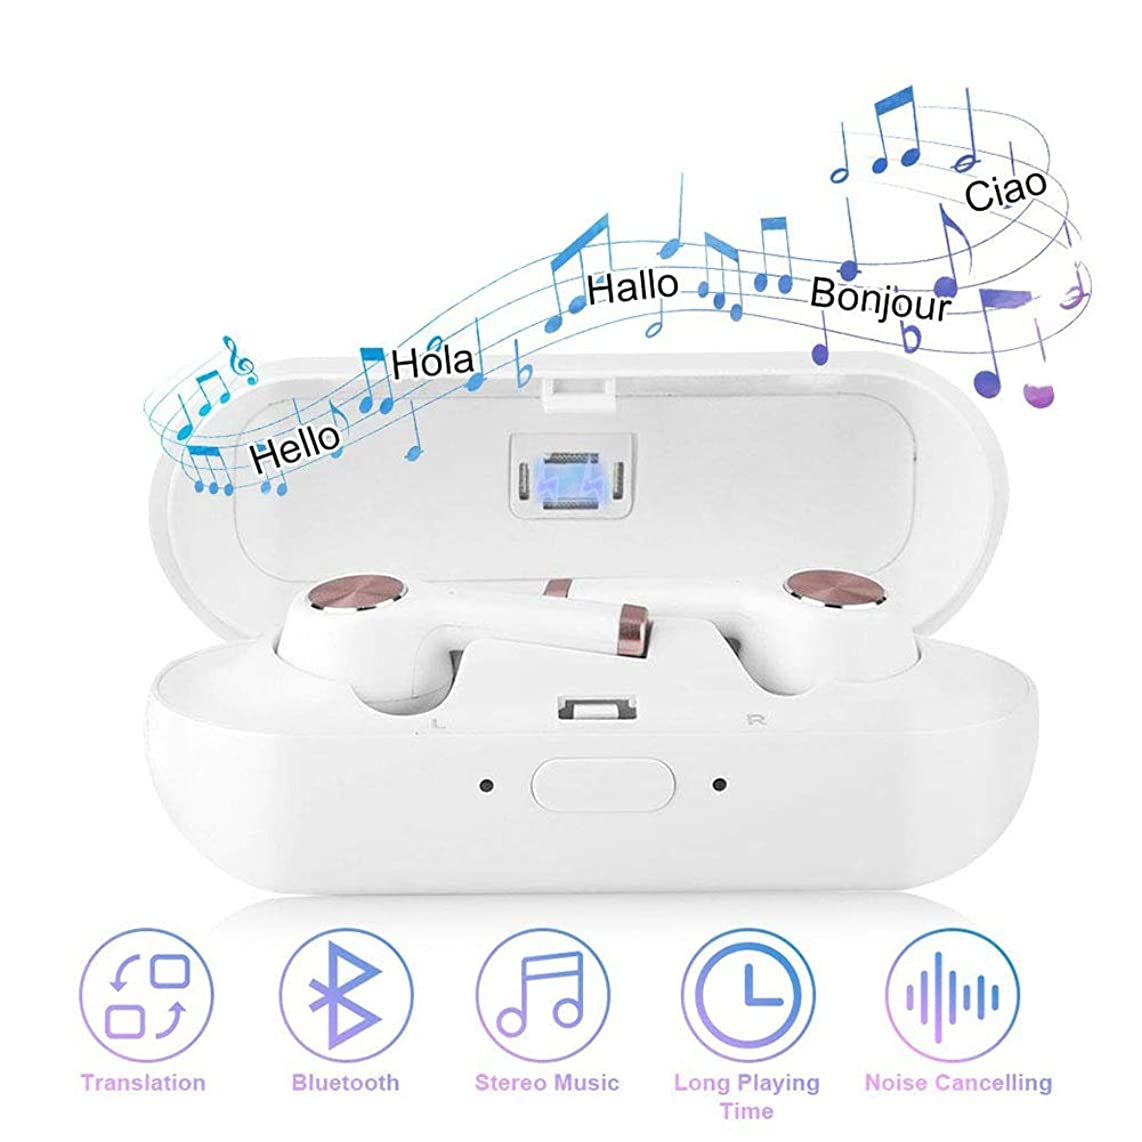 LXYFMS Wireless Language Translator, Earbuds with Charging Box 2-in-1 Bluetooth Headset Device Voice Translation Support 19 Languages Translator